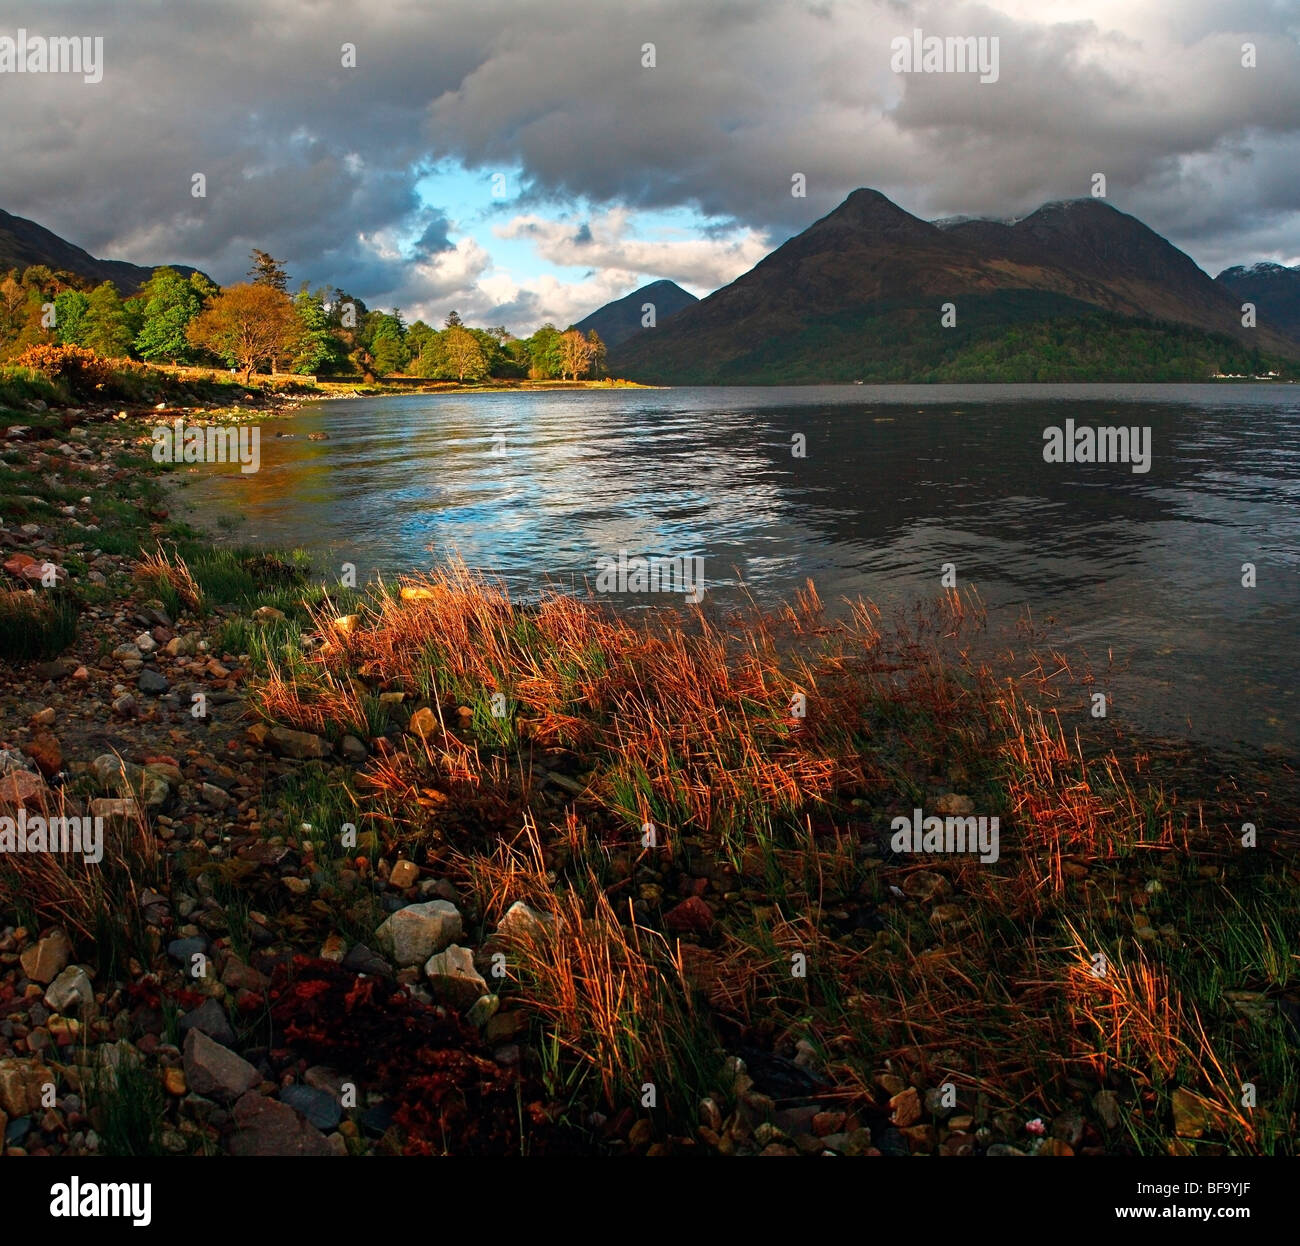 Loch Leven and Pap of Glencoe, near North Ballachulish, Highlands, Scotland, UK - Stock Image